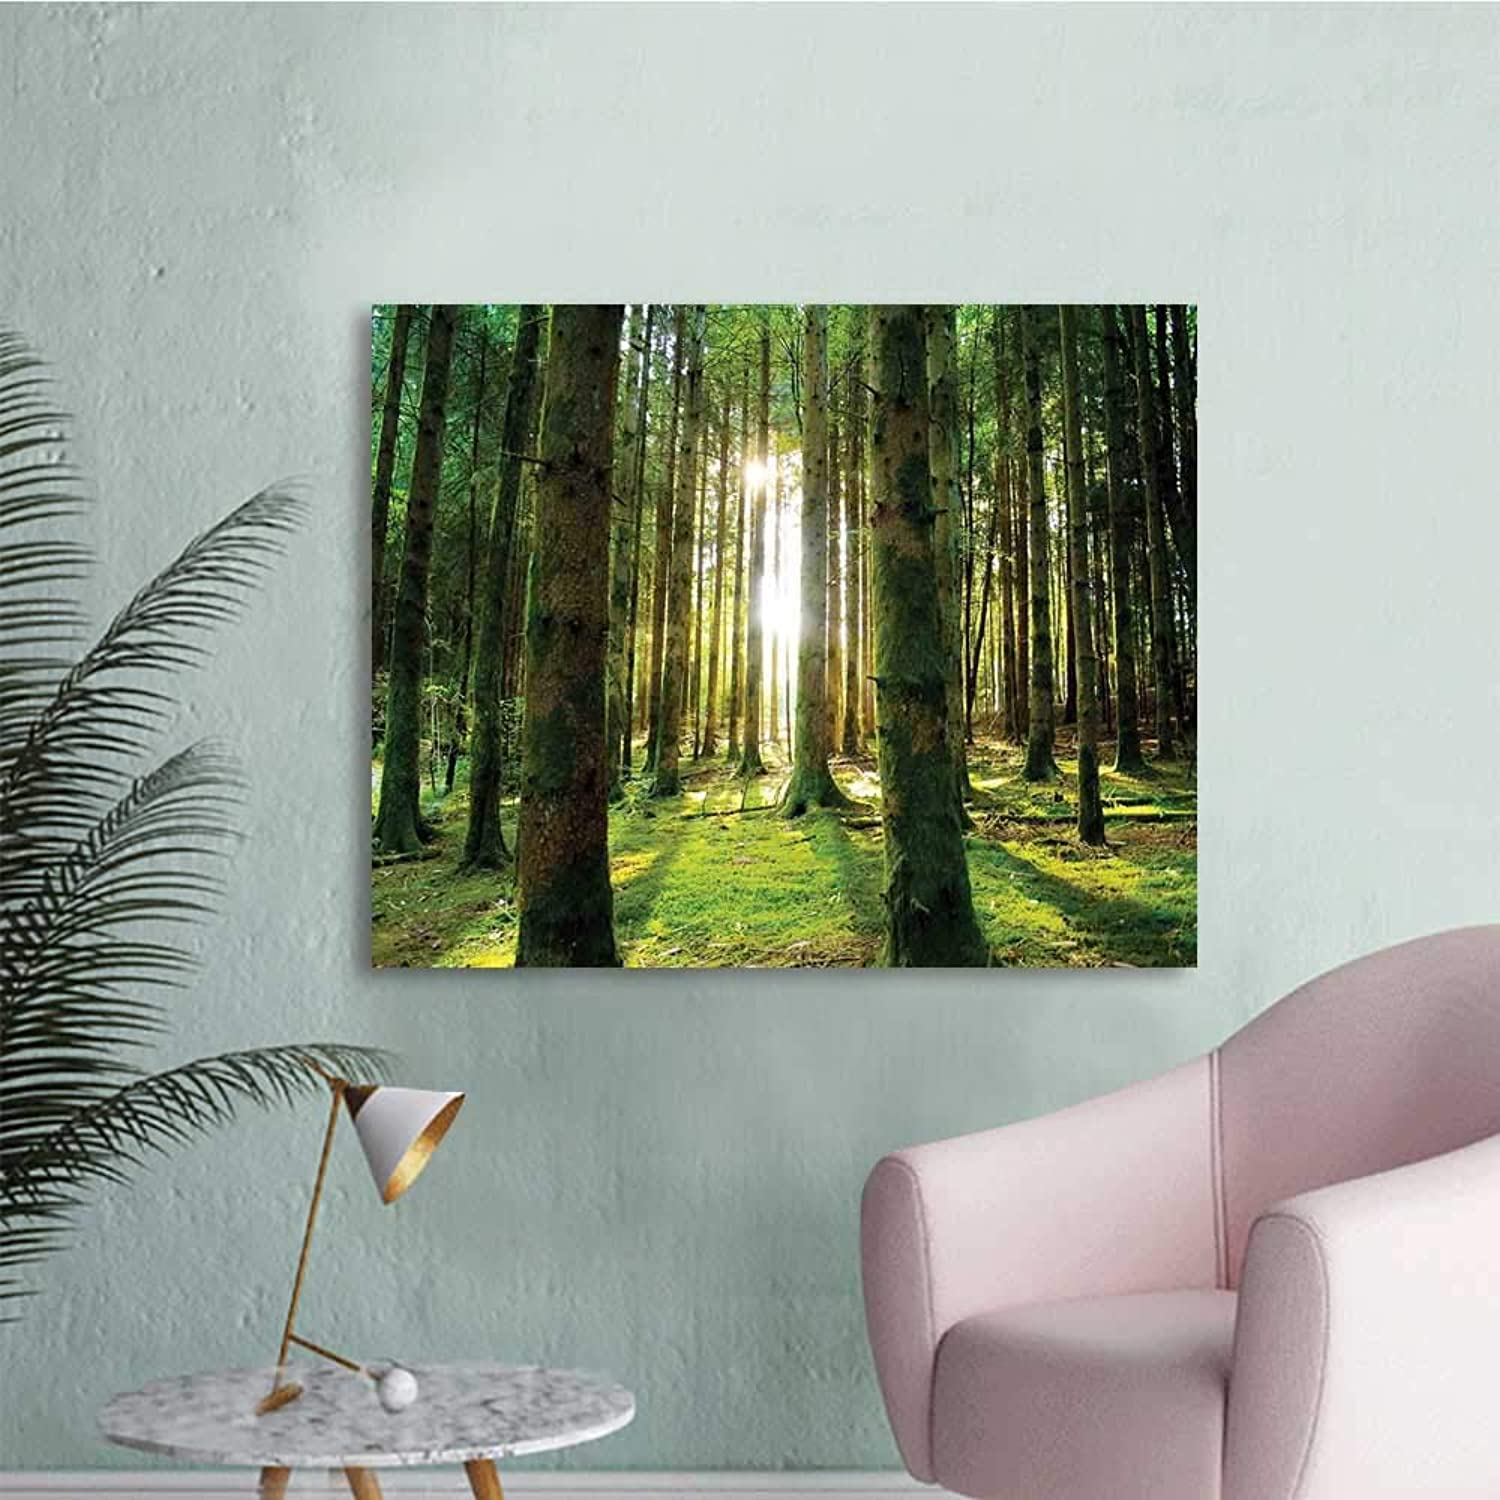 Forest, Art Decor Decals Stickers Scenic Scenery with Sunbeams in The Forest Sunny Summer Day Morning View Picture W36 xL32 Wall Decals for Kids